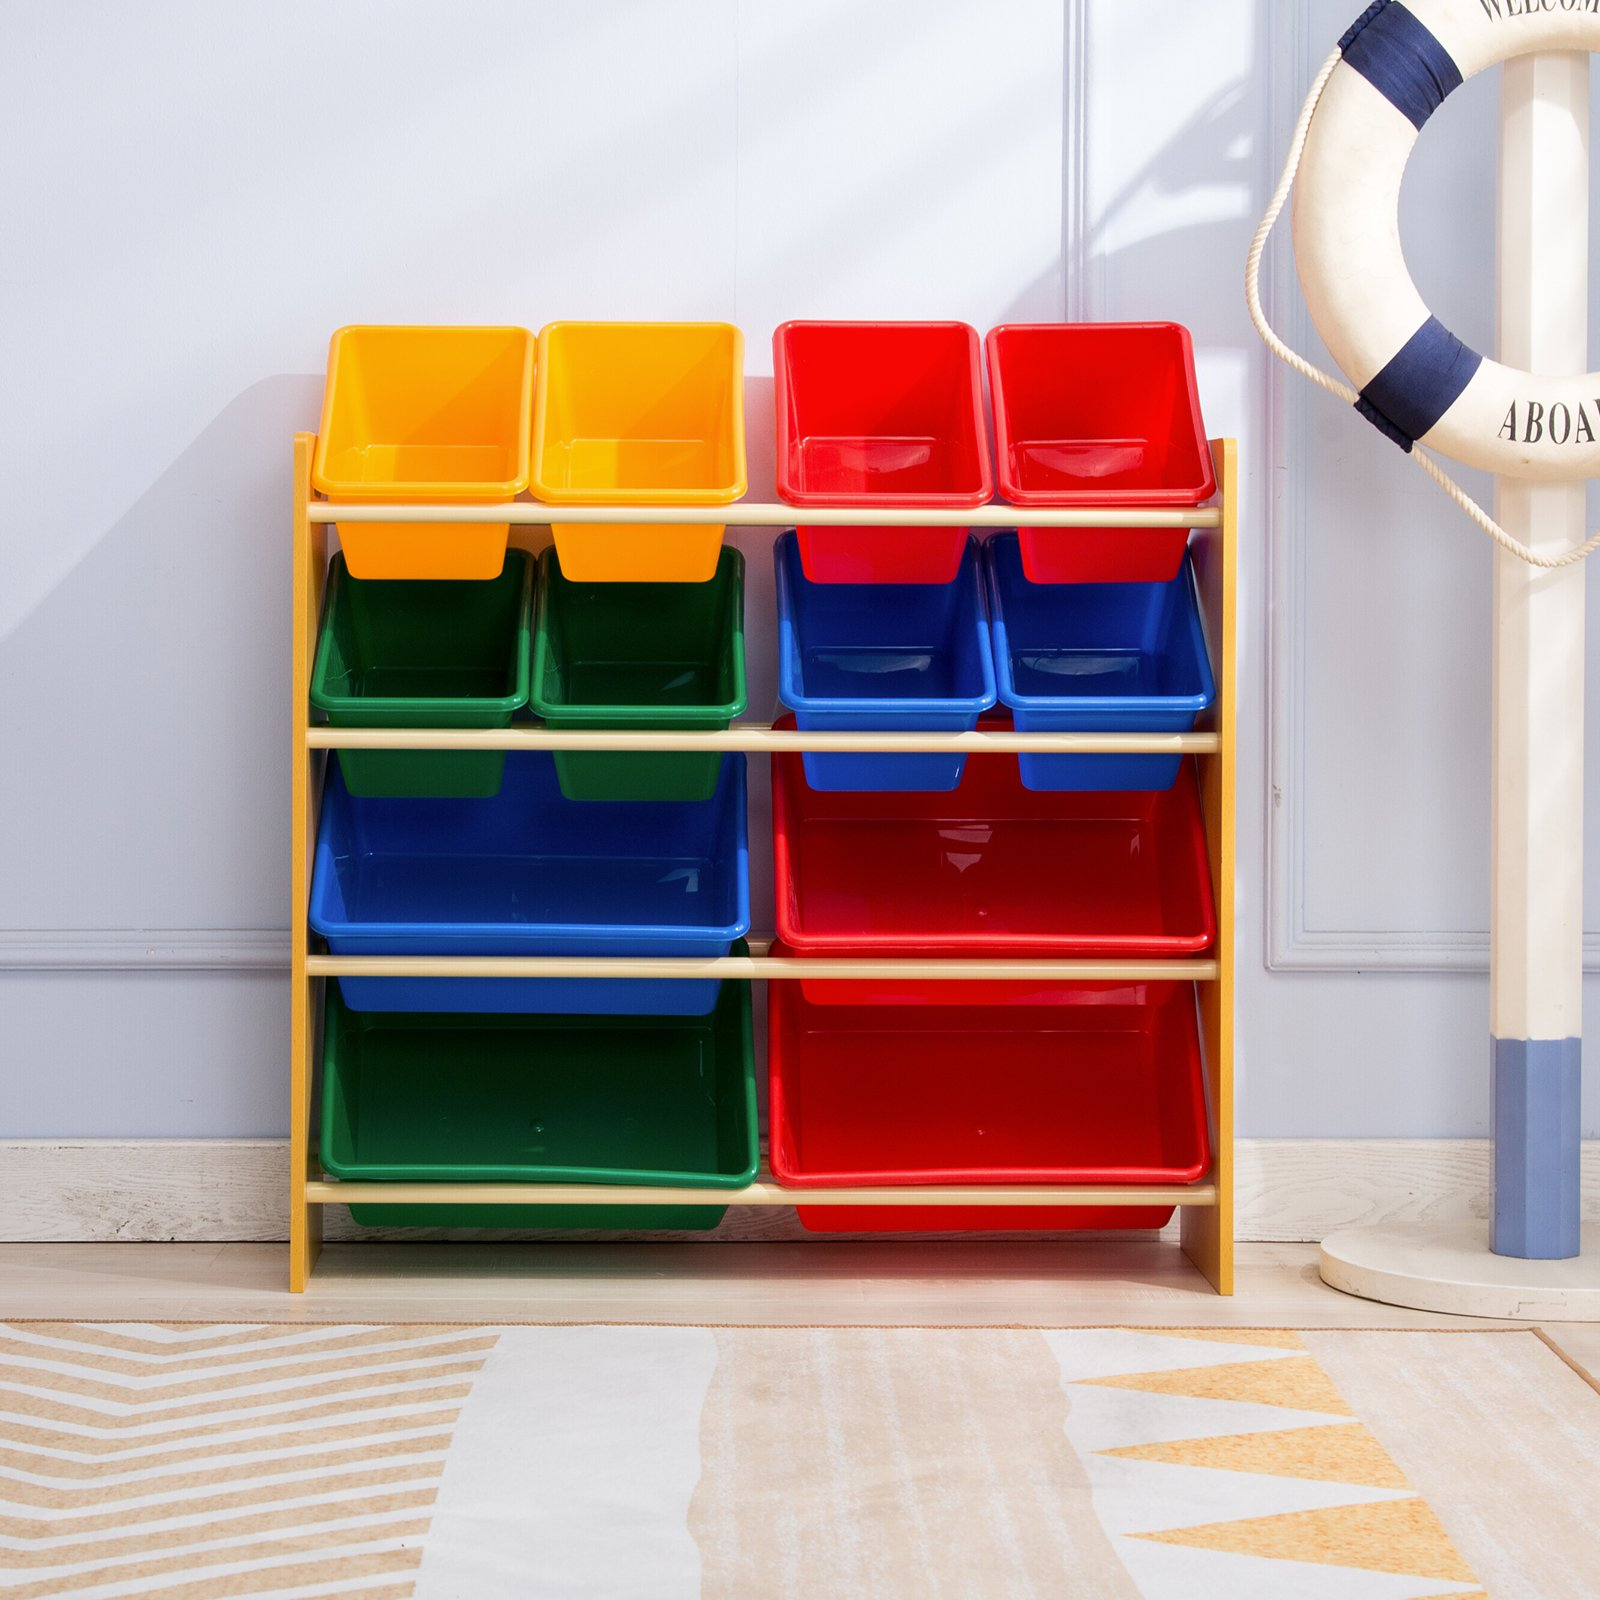 Mecor Kids' Toy Bin Storage Organizer Box Shelf Drawer, with 12 Extra Large 4 Color Plastic Bins, for Kids Bedroom Playroom Furniture Set,Primary Collection/Natural